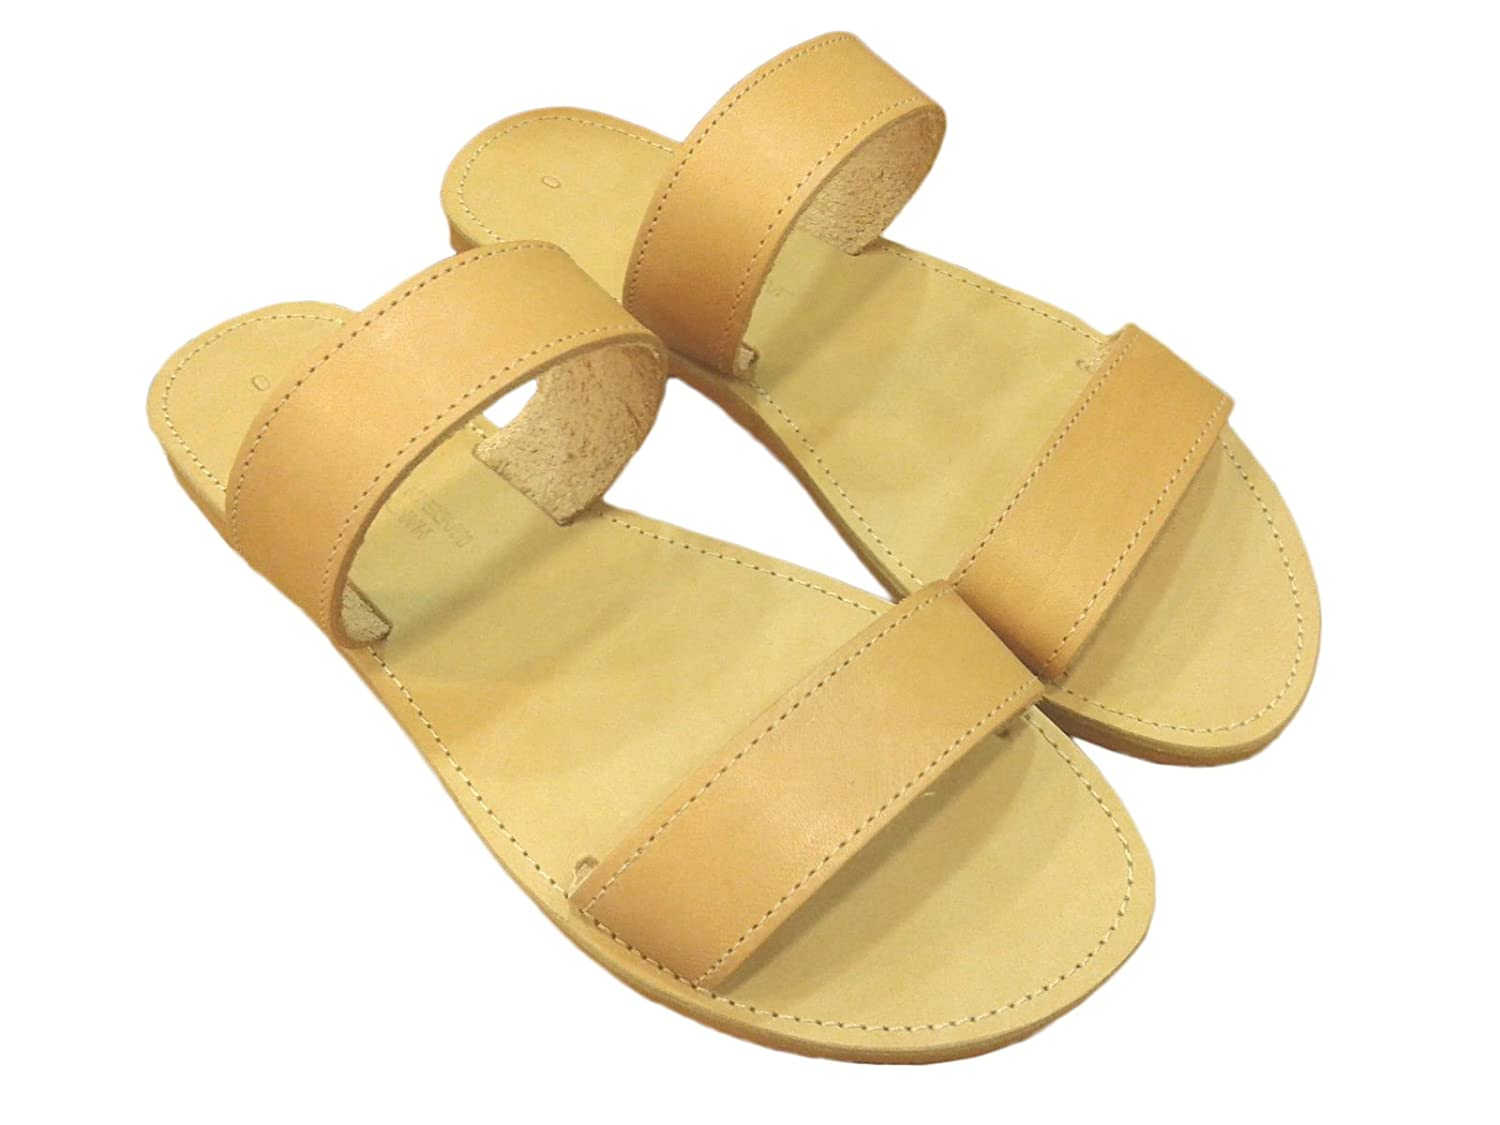 76d1709c2c62c Ancient Greek Style Leather Sandals Roman Handmade Unisex Mens ...